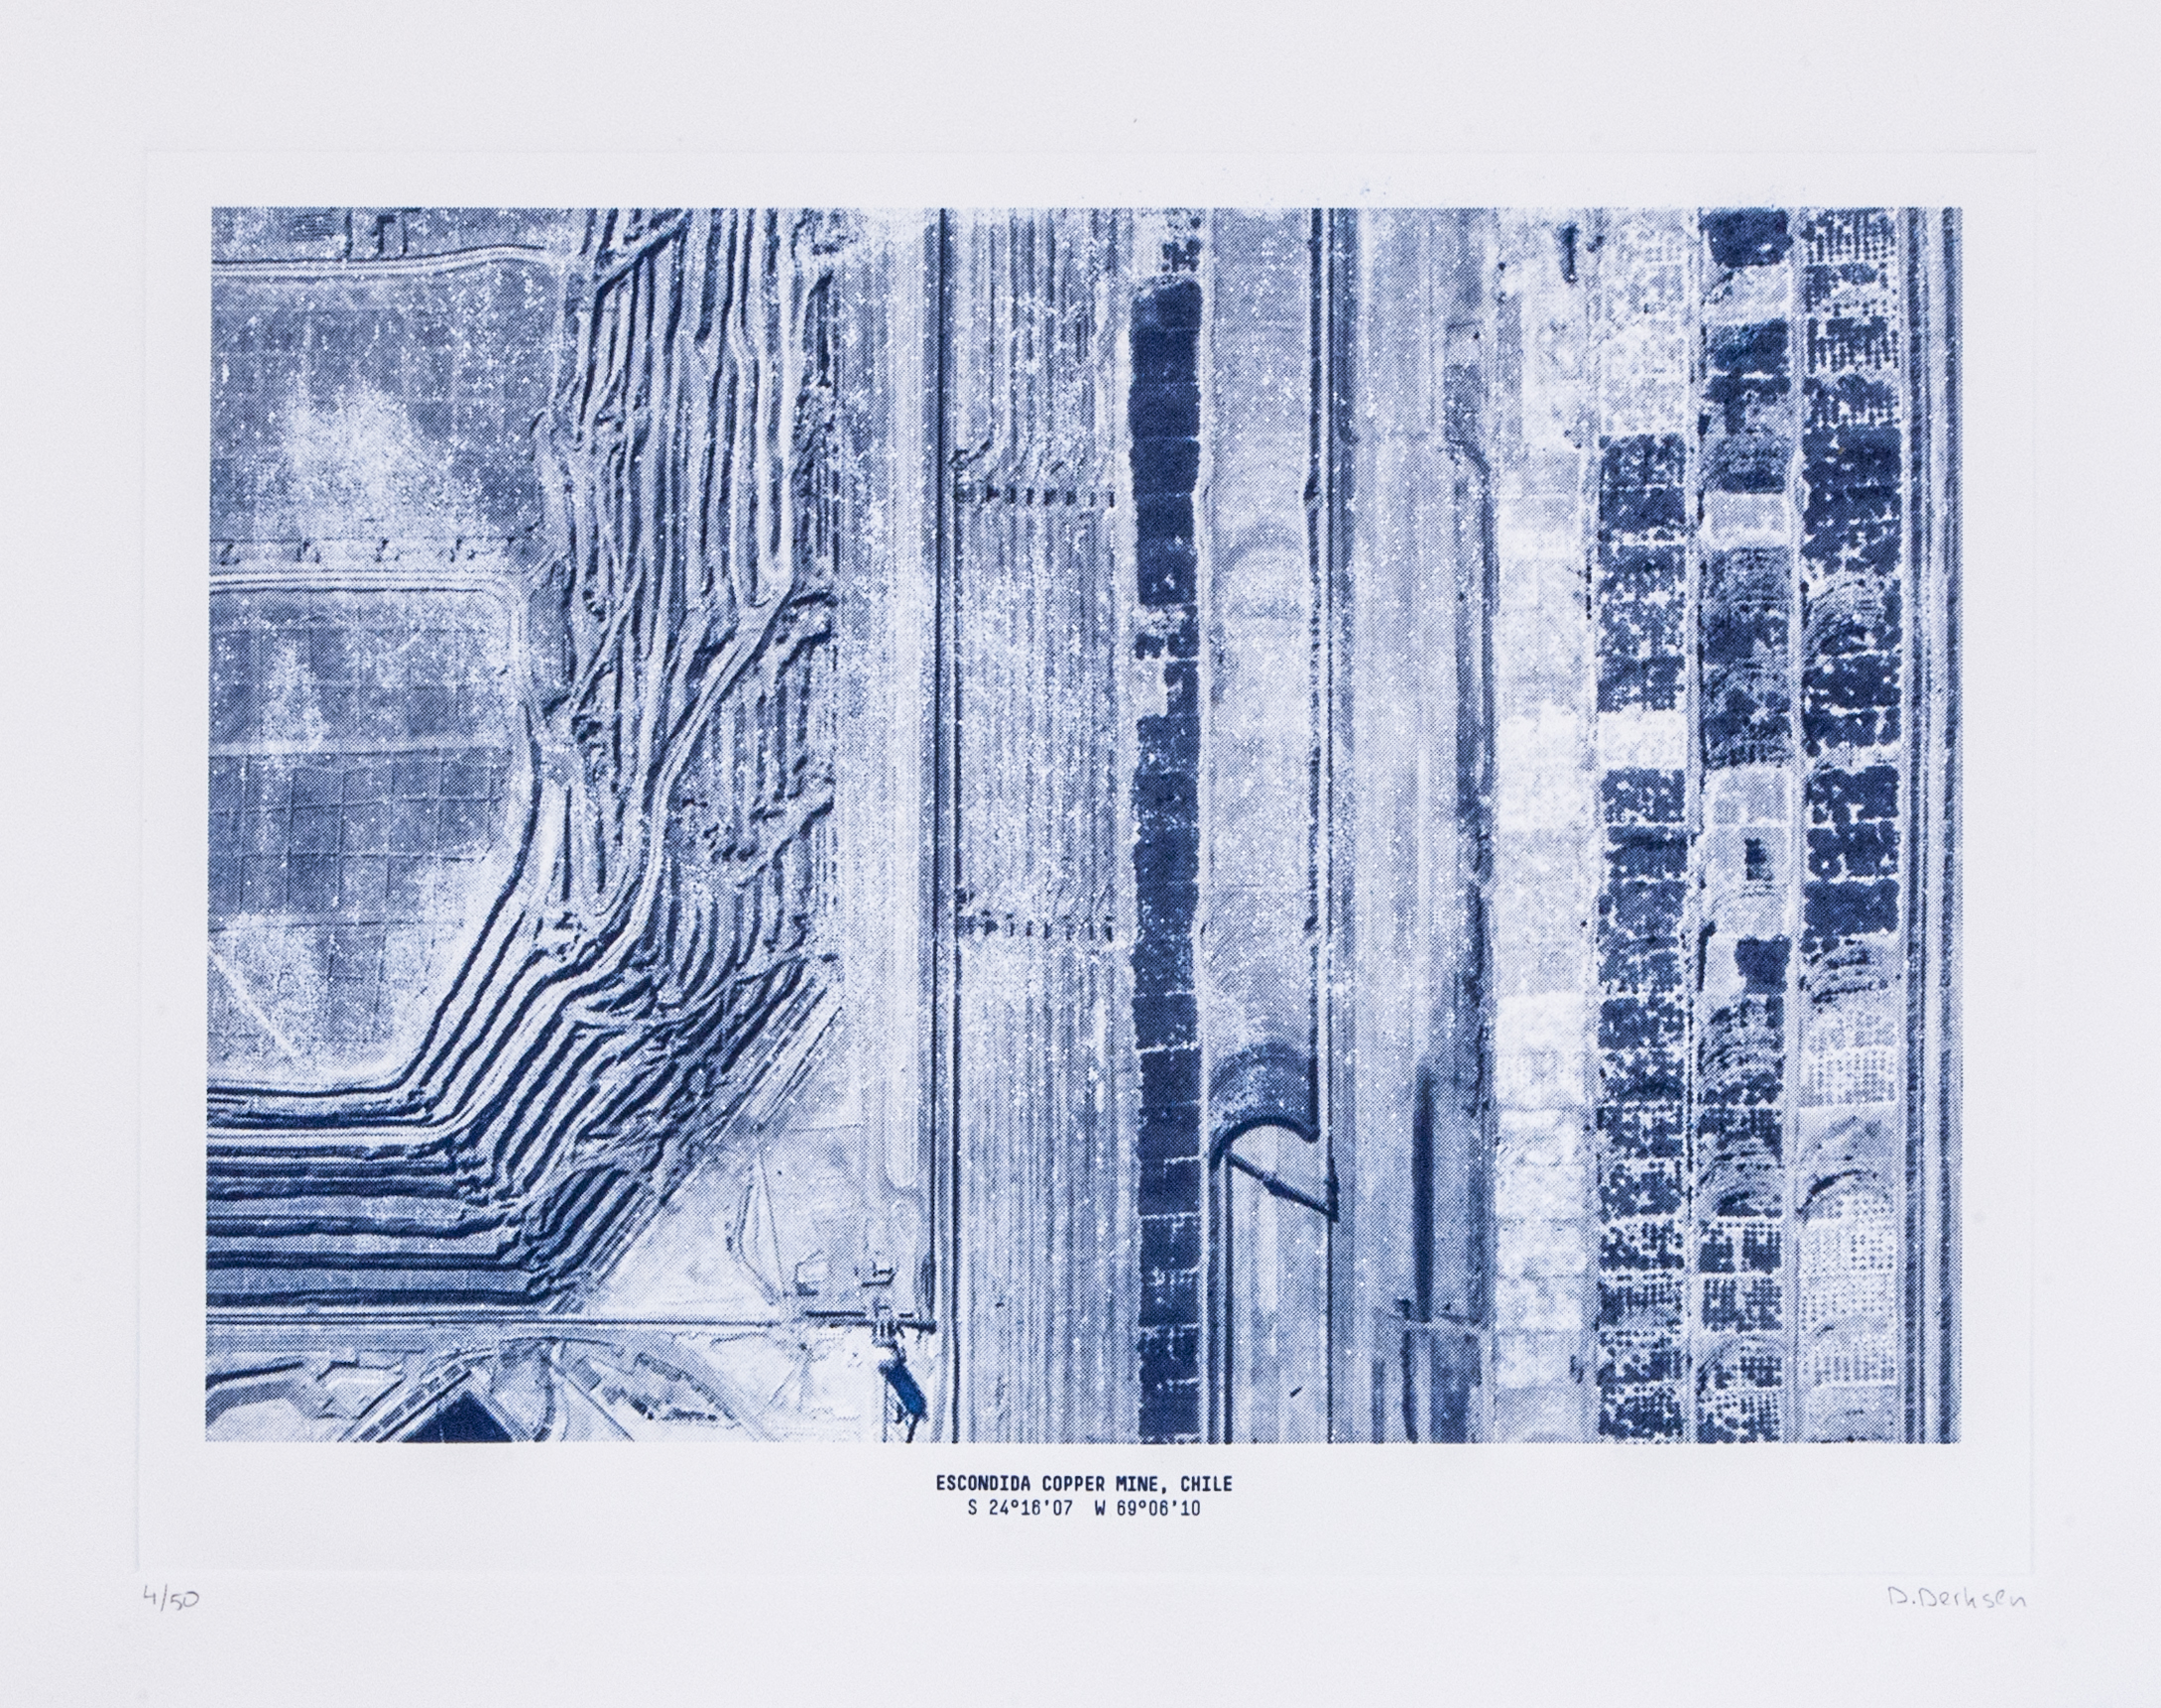 The Copper Project-Mining Print 2-David Derksen Studio.jpg